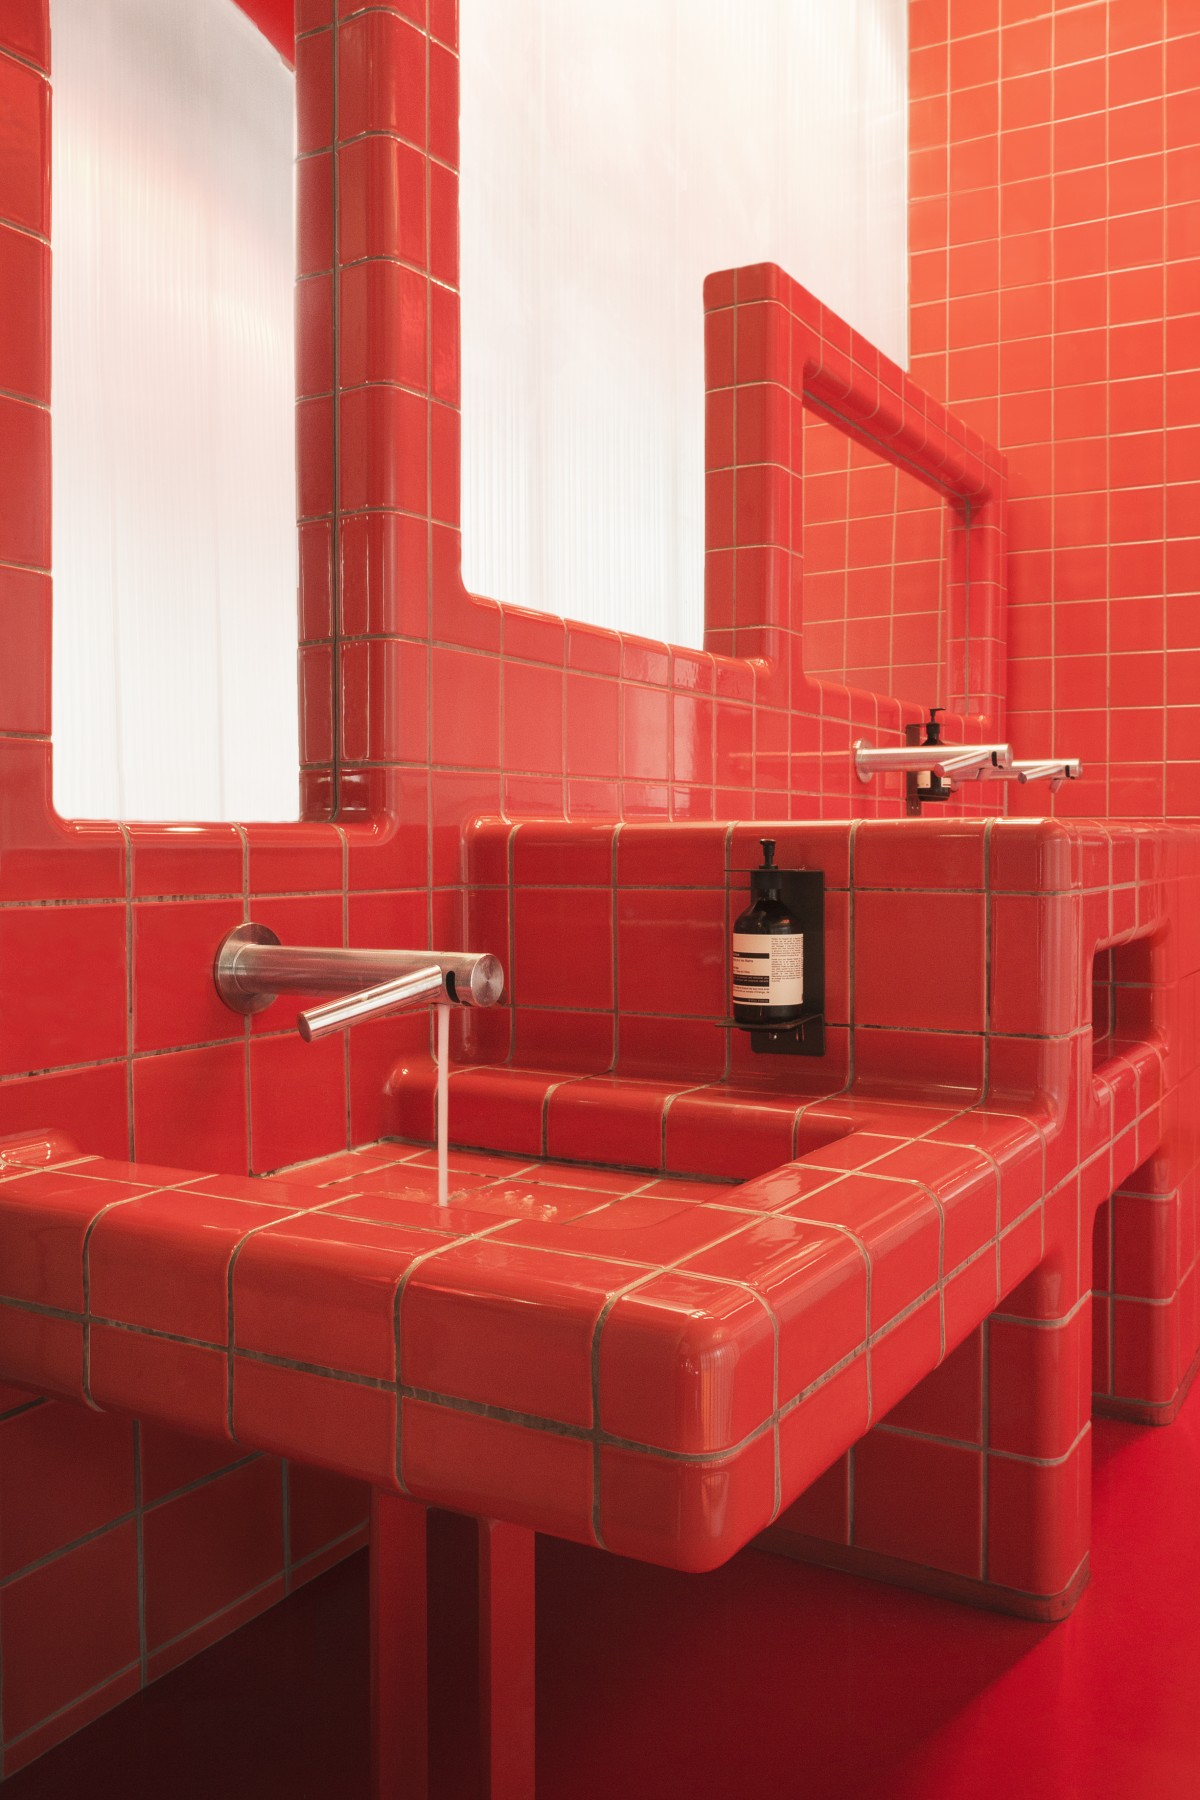 designing bathroom with 3d tiles, with rounded  threedimensional corners and integrated tap, sink, mirror